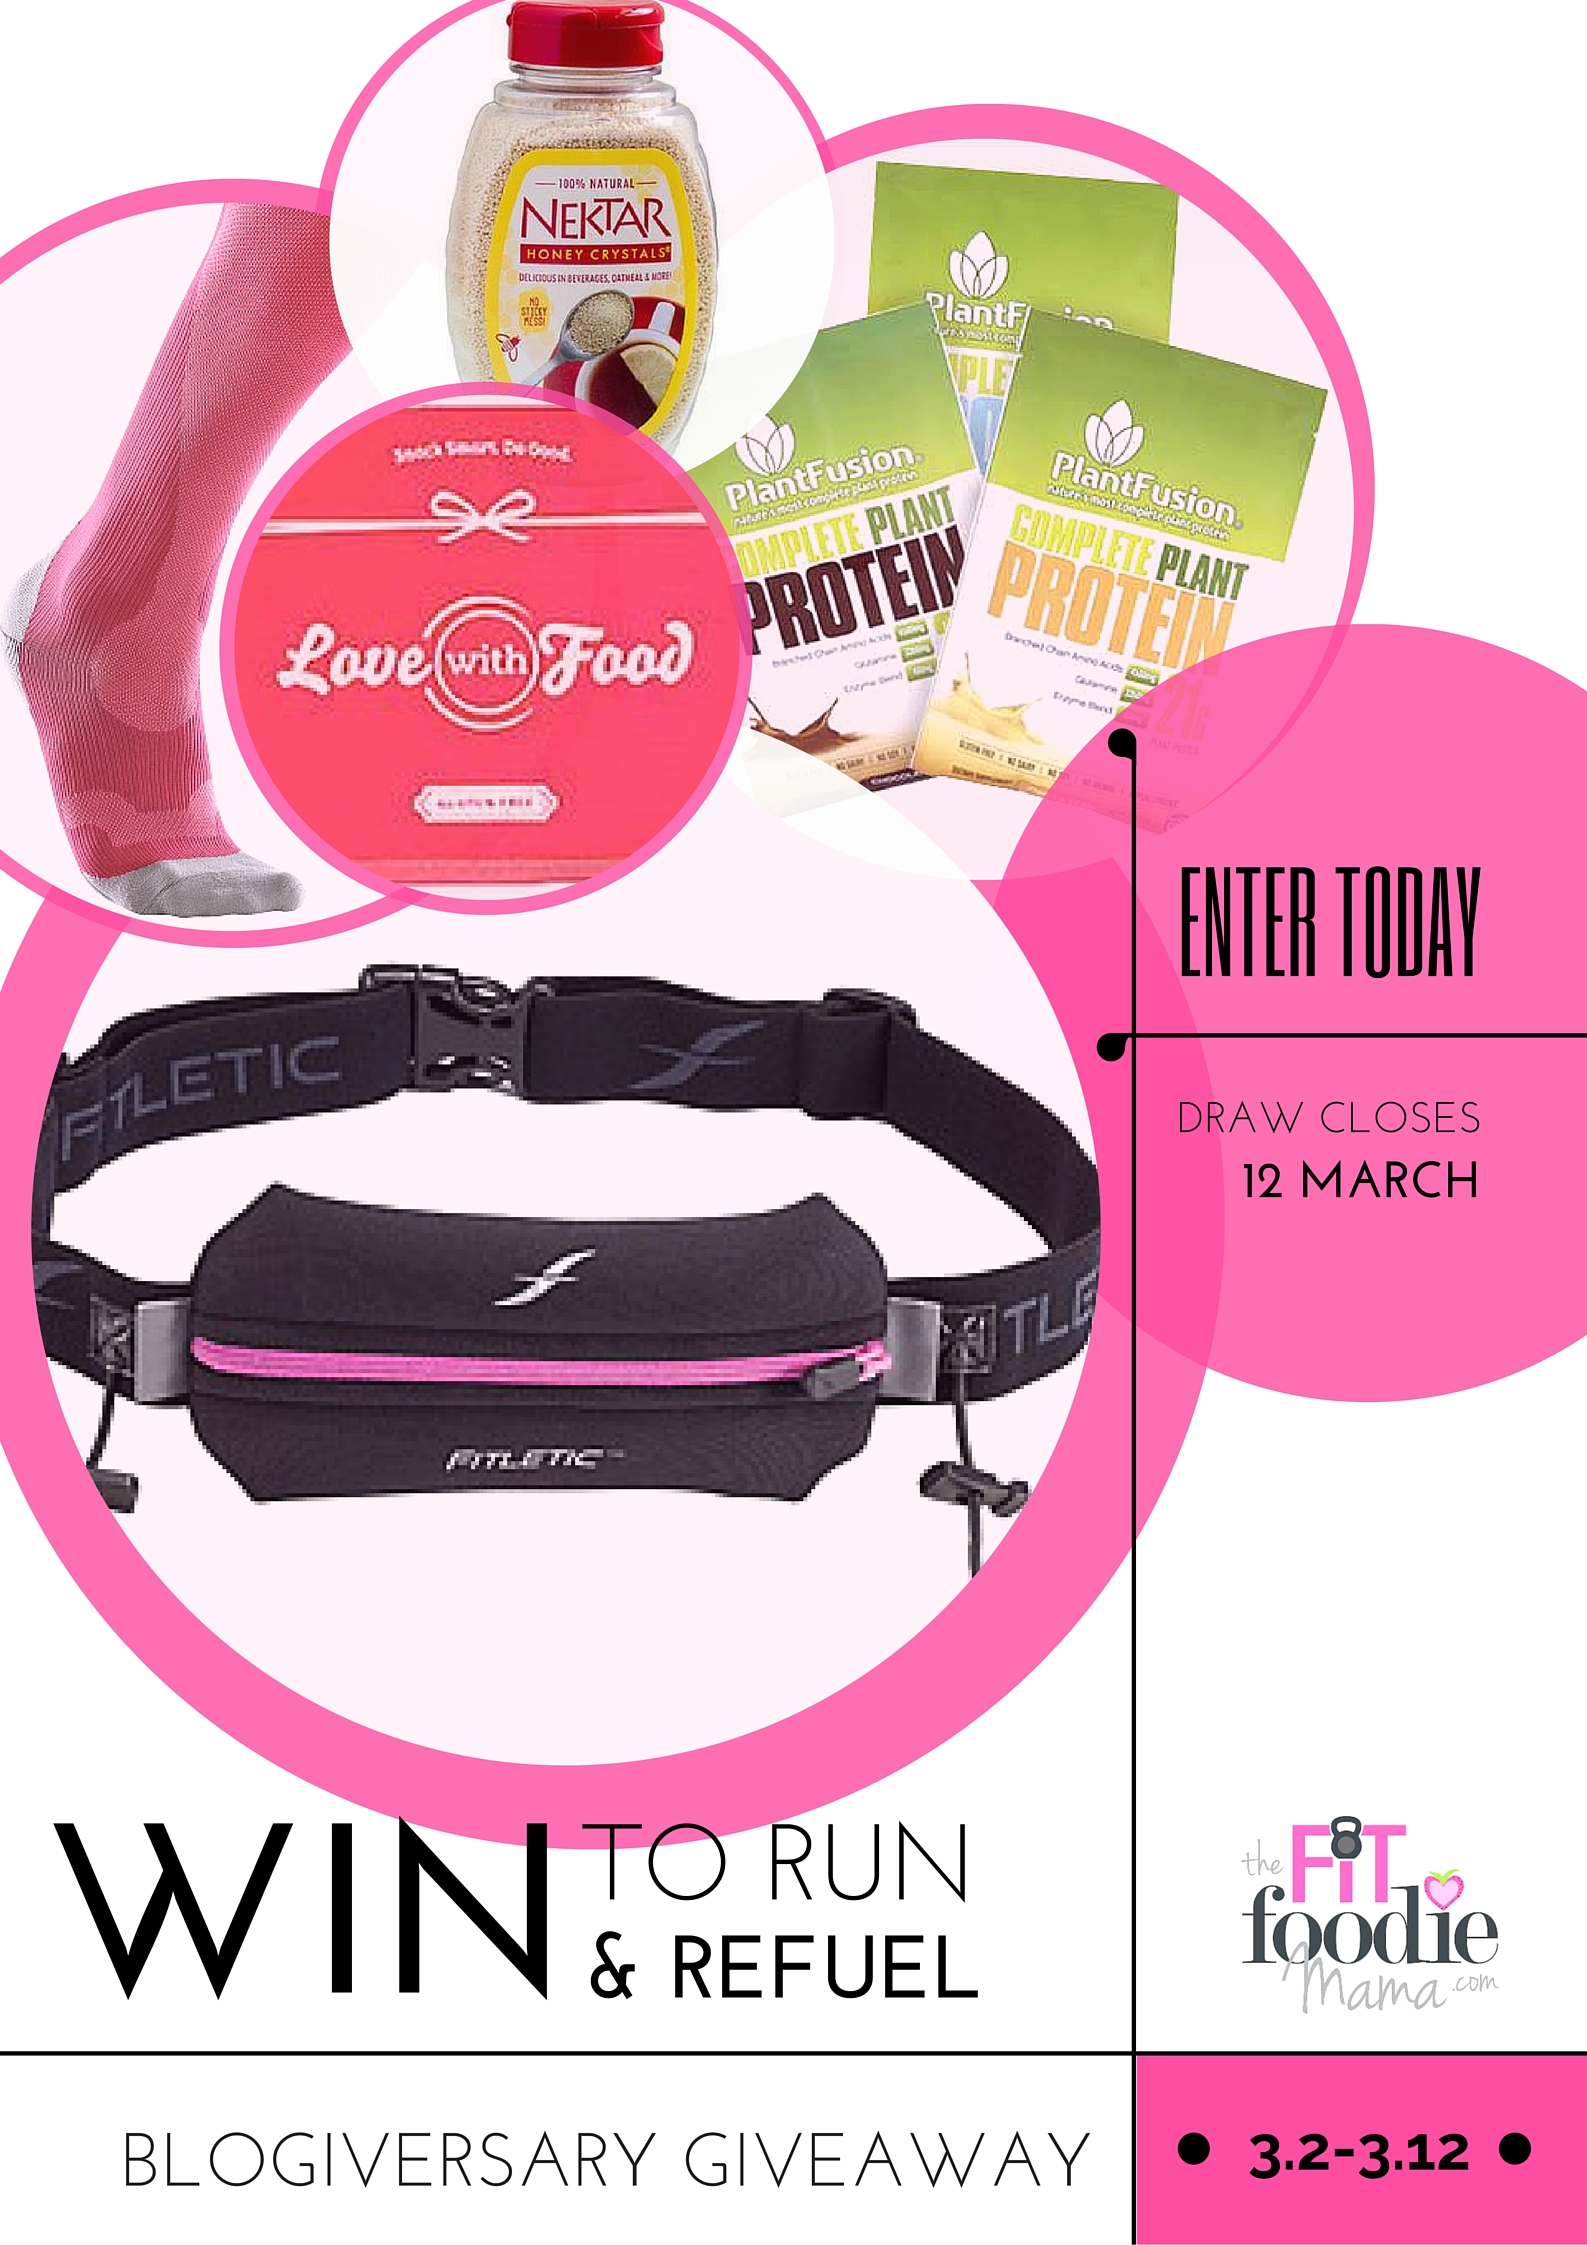 @FitFoodieMama's 2 Year Blogiversary Giveaway! Win to Run & Refuel with prizes from @fitletic, @brightlifego, @plantfusion, @lovewithfood, @nektarnaturals!